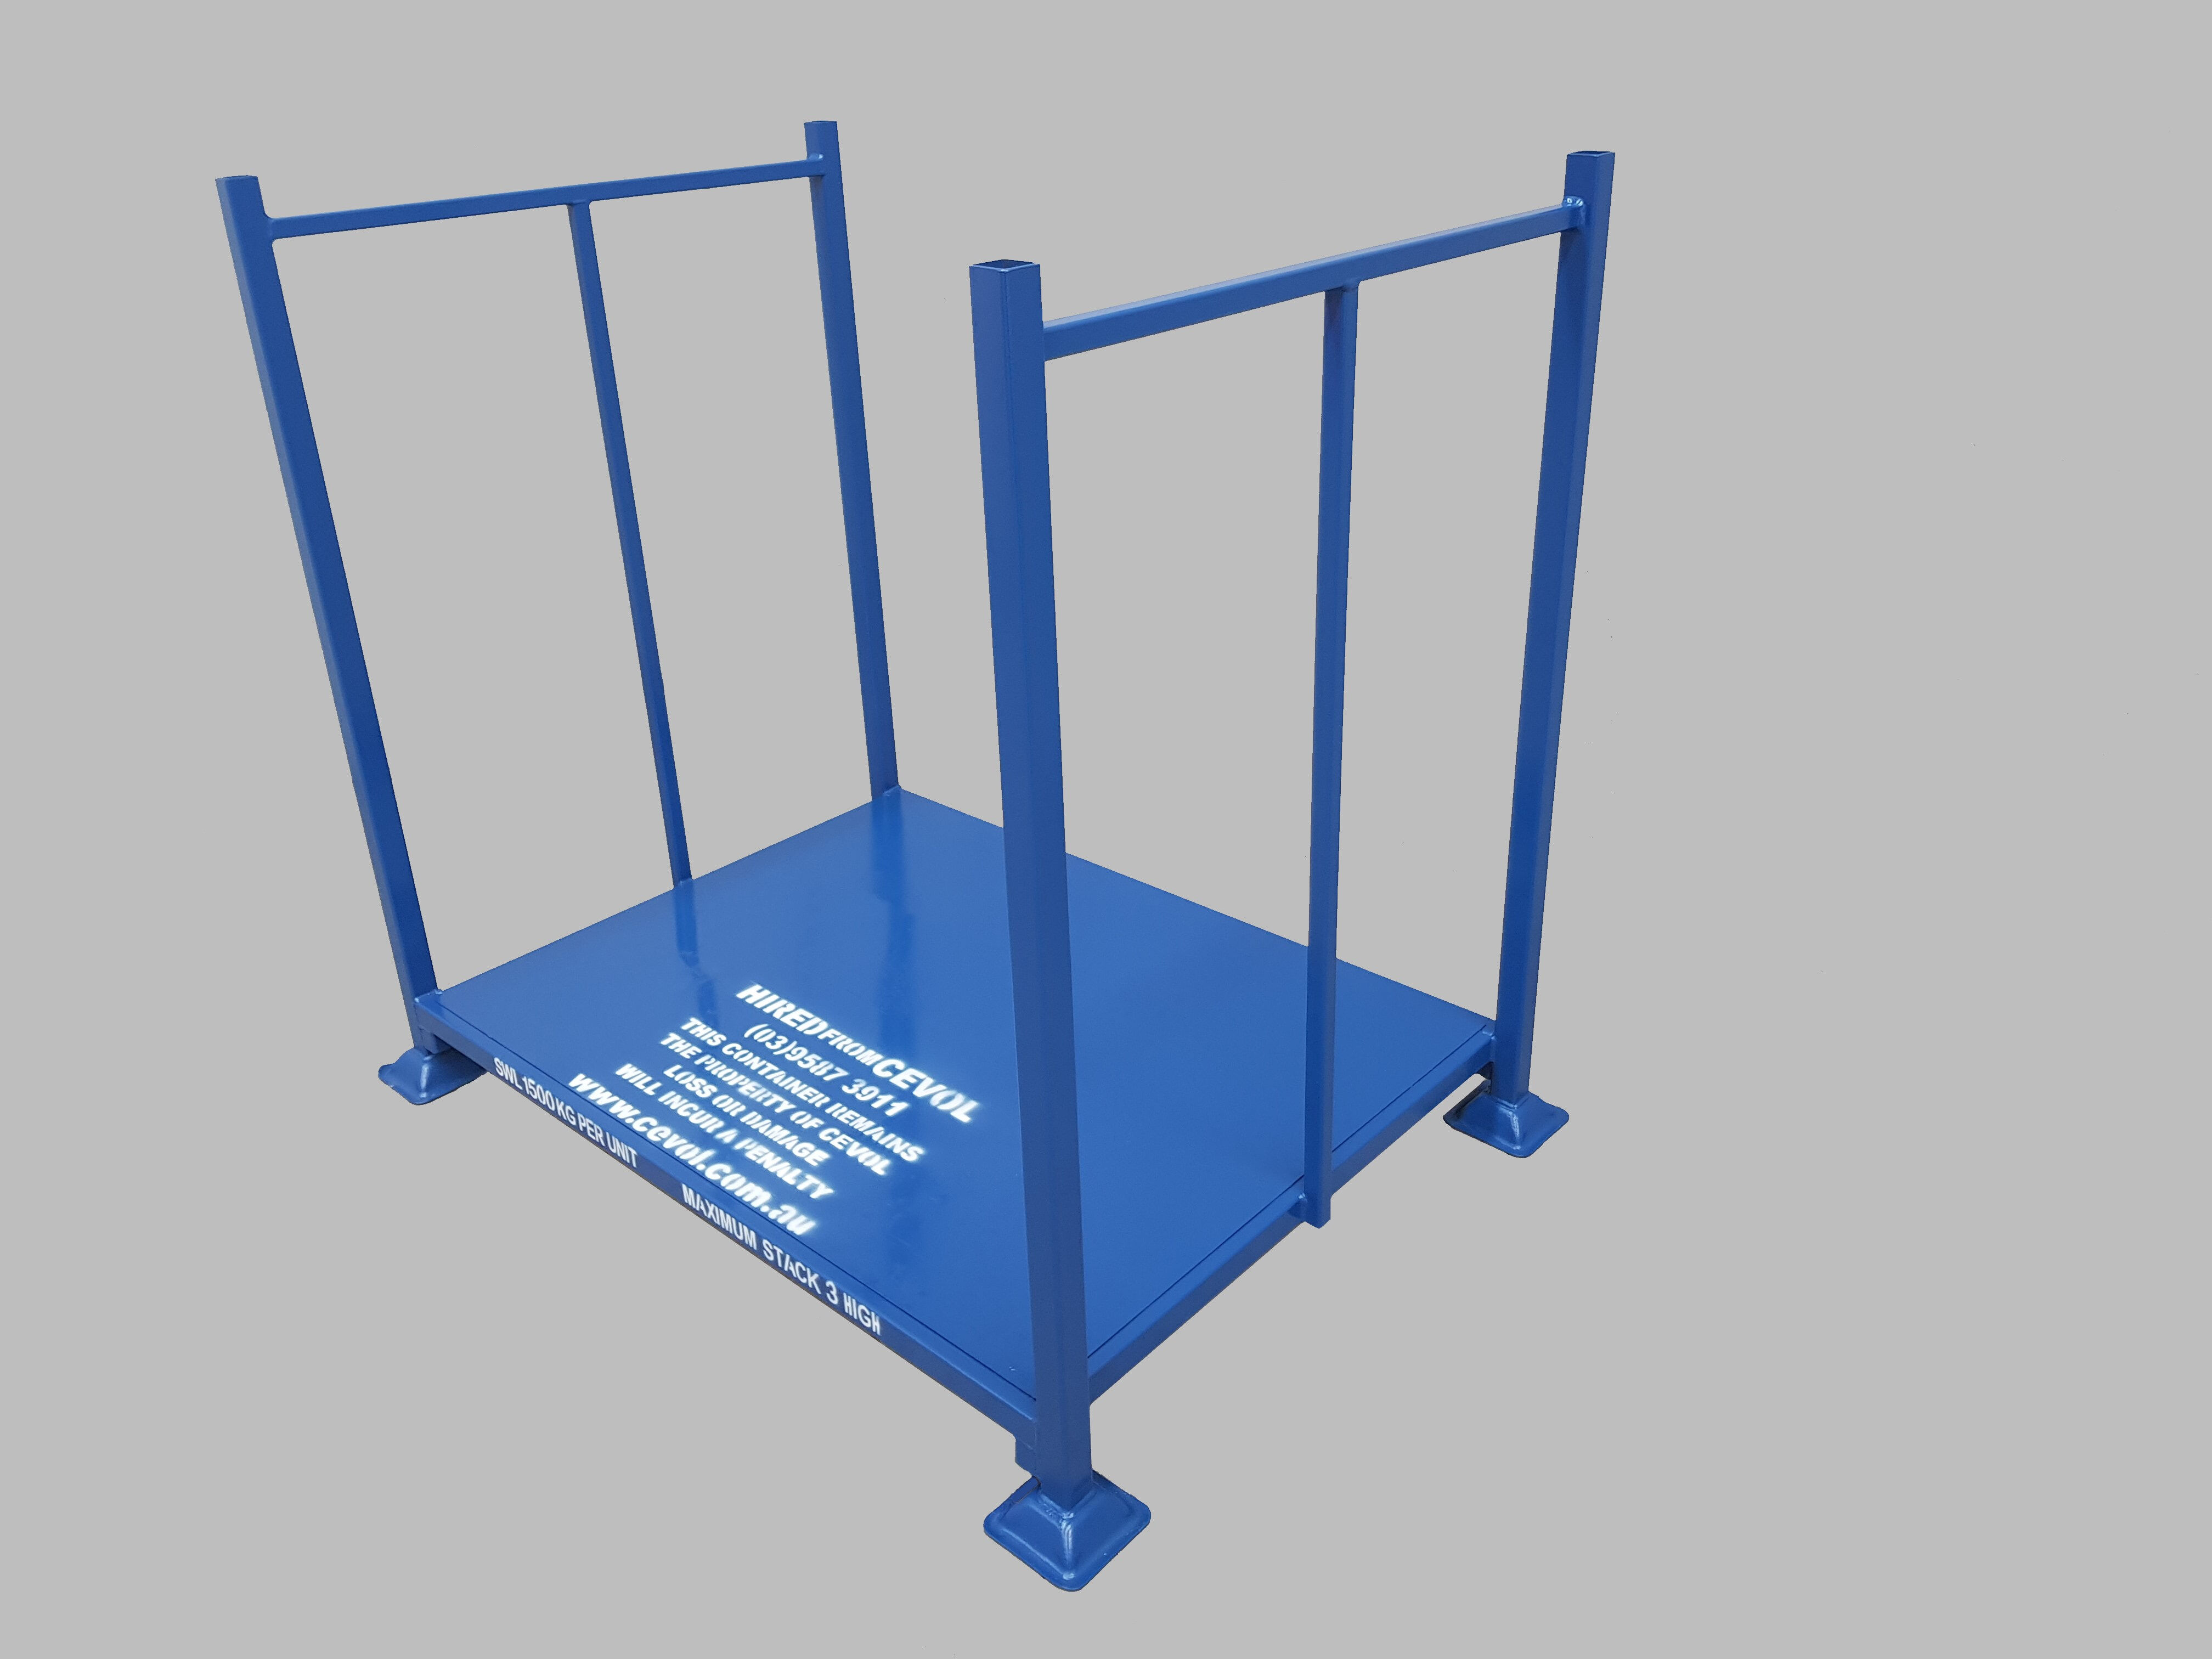 DWP - Open pallet with fixed end frames for storing wooden pallets